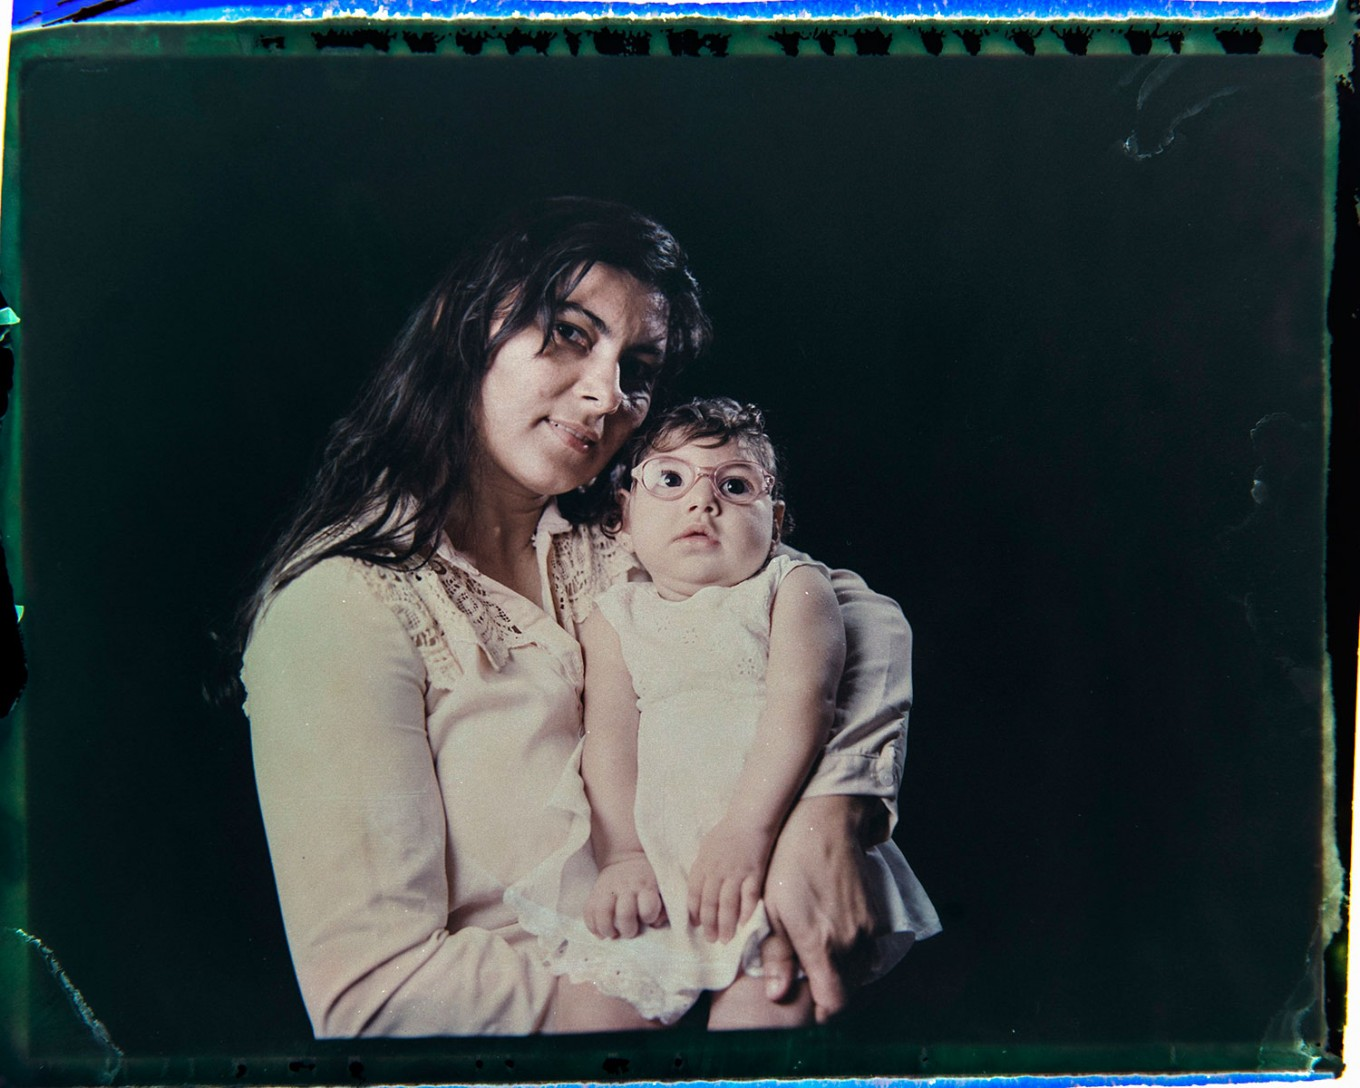 In this Sept. 29, 2016 photo made from a negative recovered from instant film, Jusikelly da Silva poses for a photo with her daughter Luhandra, who was born with microcephaly, one of many serious medical problems that can be caused by congenital Zika syndrome, in Recife, Pernambuco state, Brazil. Silva says she is desperate to get a brain scan for Luhandra, who was sitting up and eating solid foods before a seizure several months ago left her virtually motionless. AP Photo/Felipe Dana